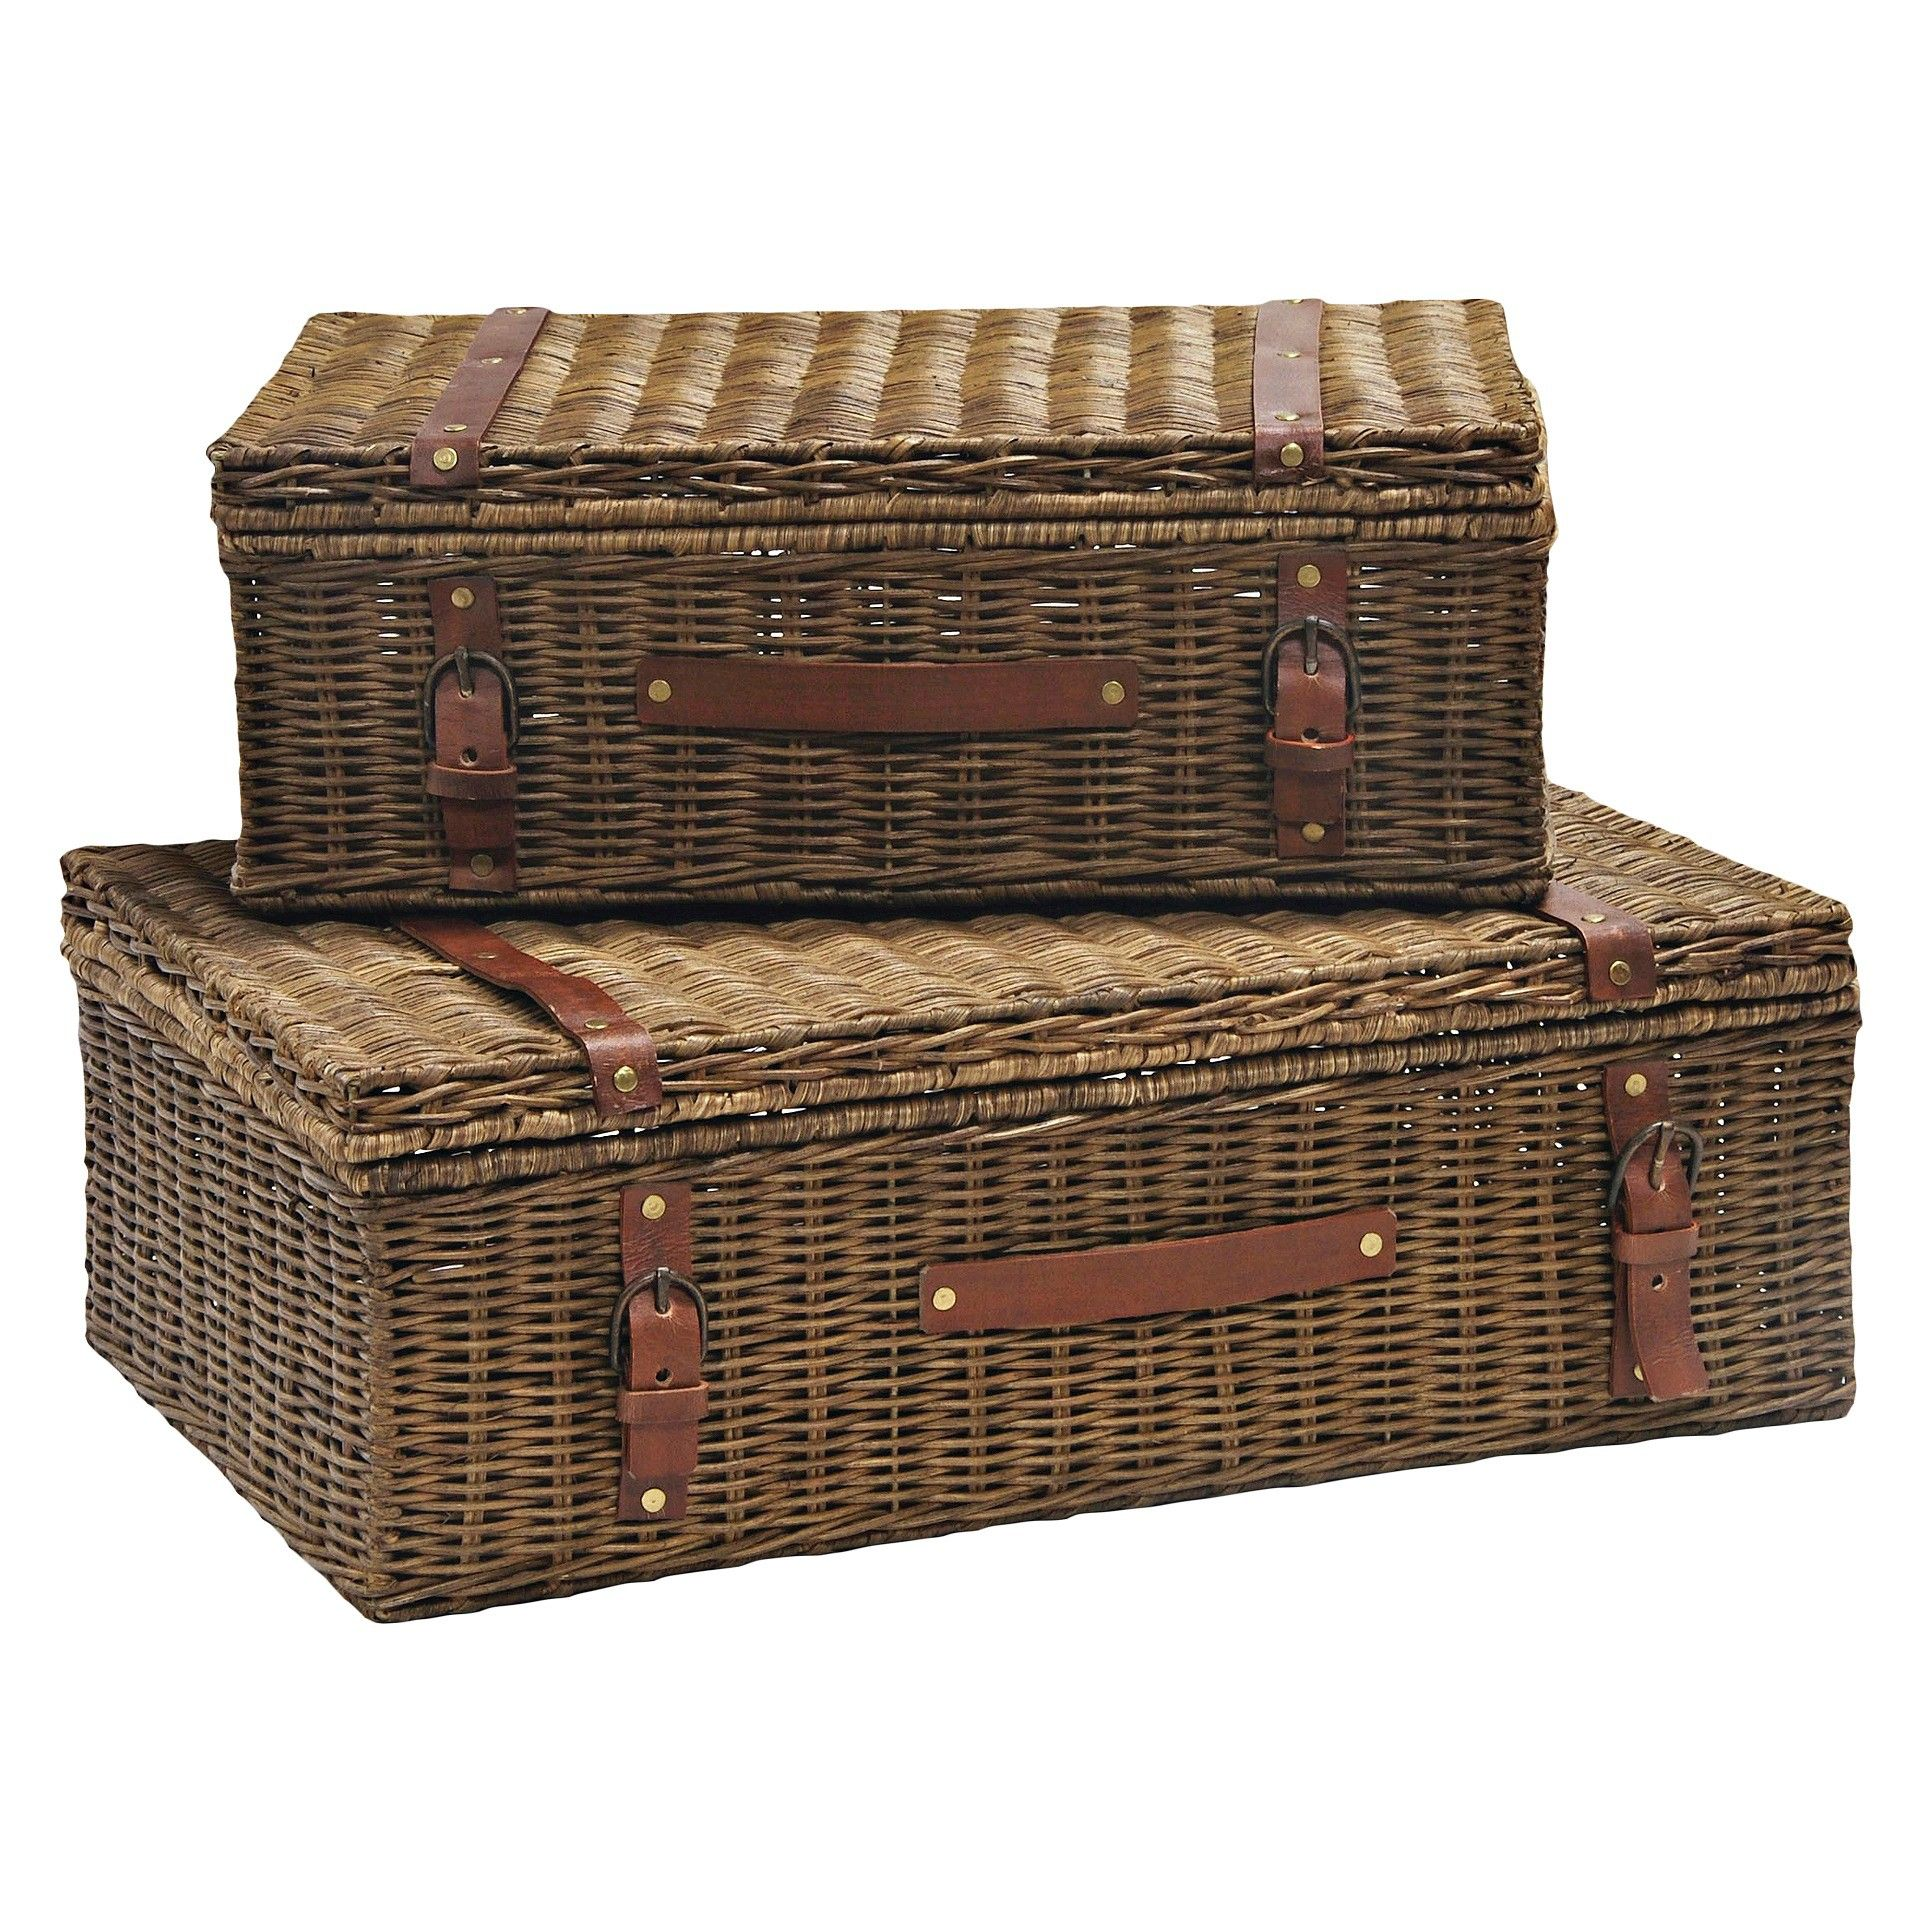 Decorative Wicker Suitcase Honey Finish Set Of 2   Inspired By A Voyager  Wicker Suitcase,